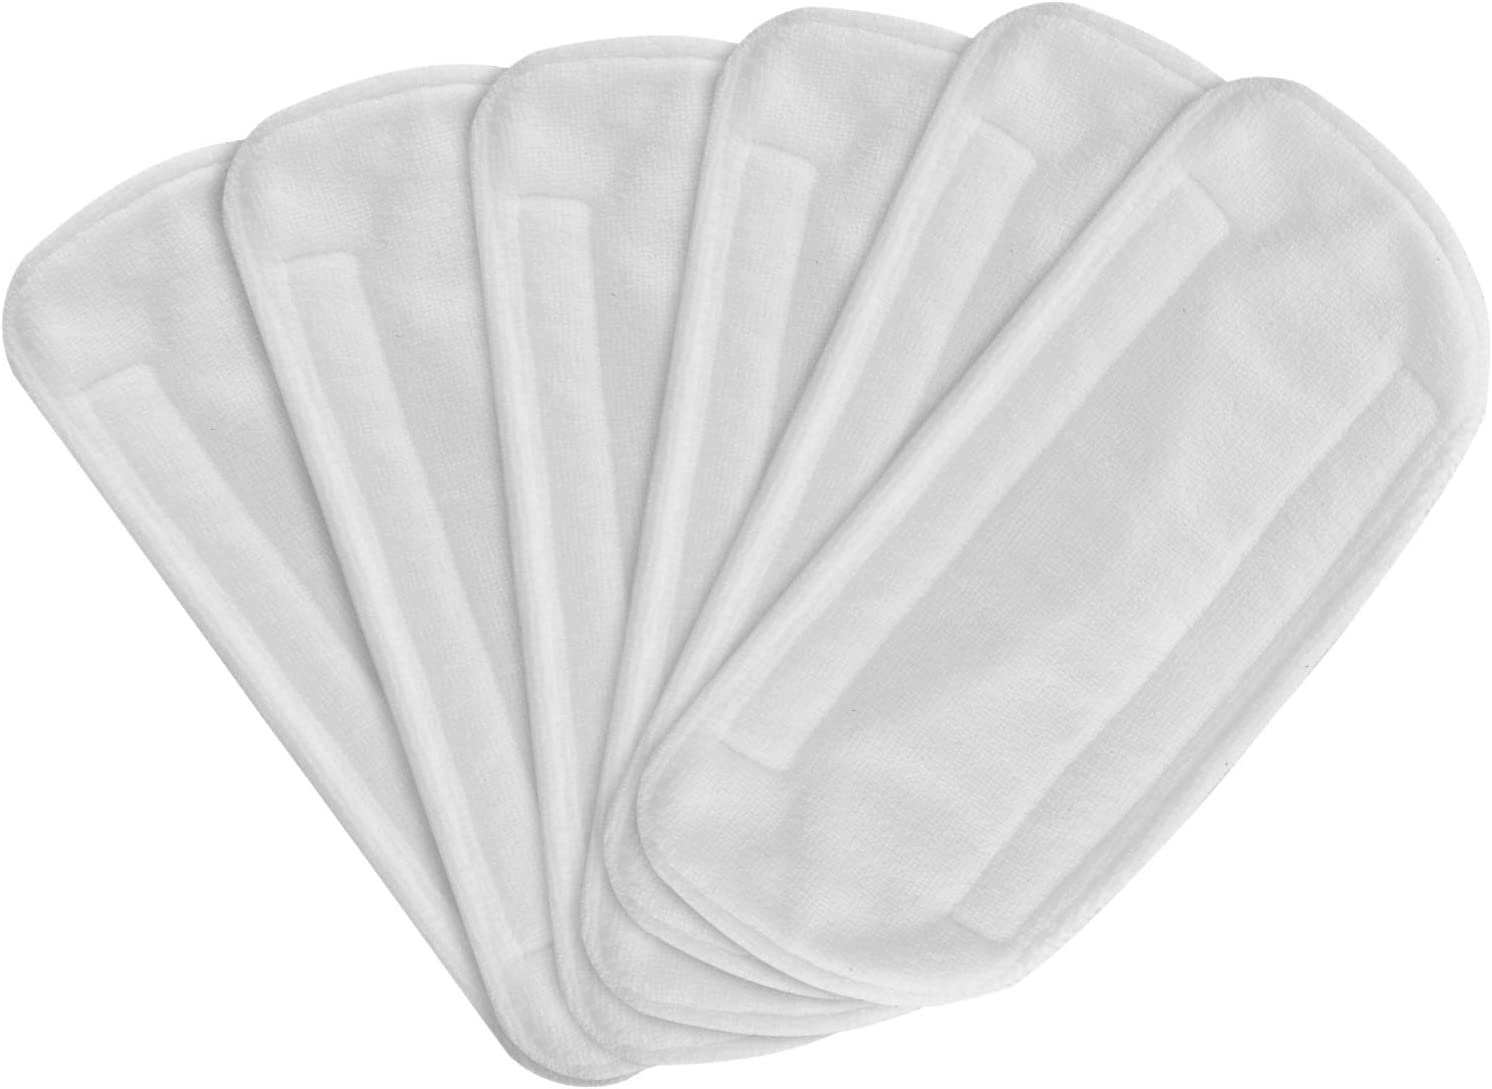 Secura 6 Pack Microfiber Mop Pads, Replacement Washable Cleaning Pads for EM-516 (White)